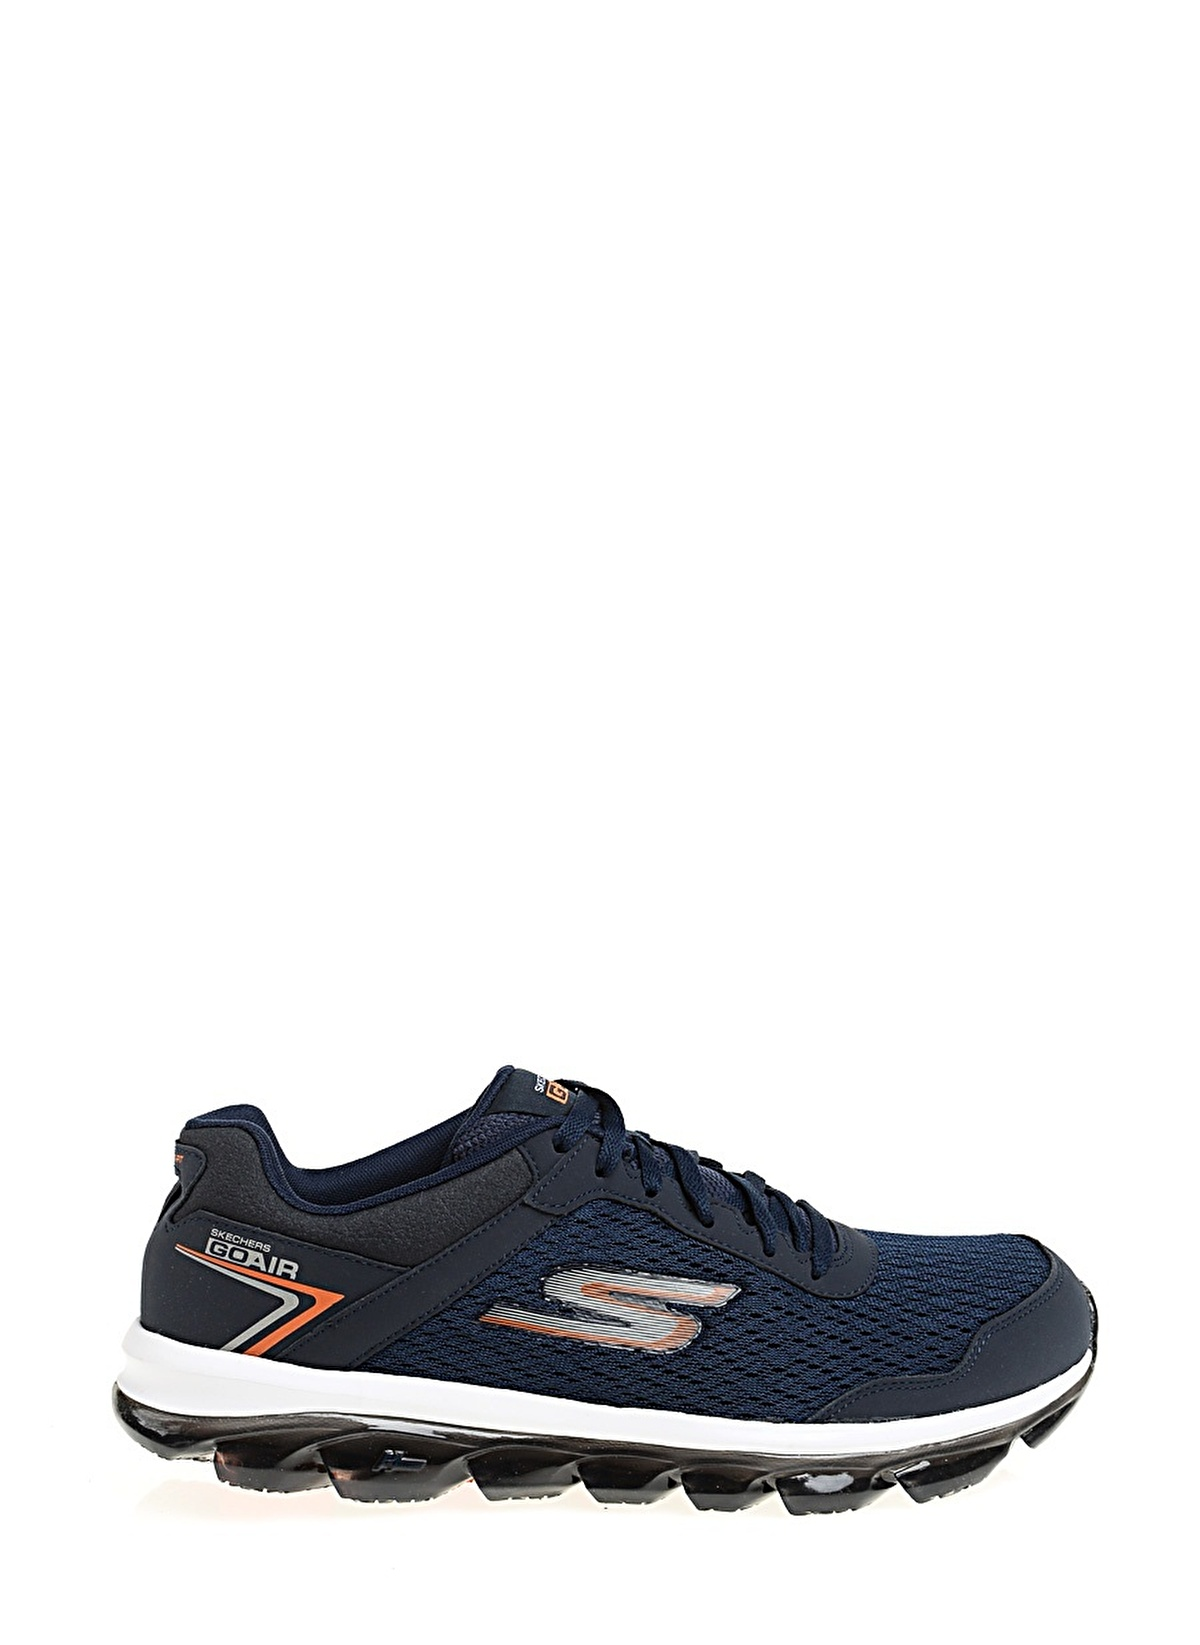 skechers go air shoes Sale,up to 51